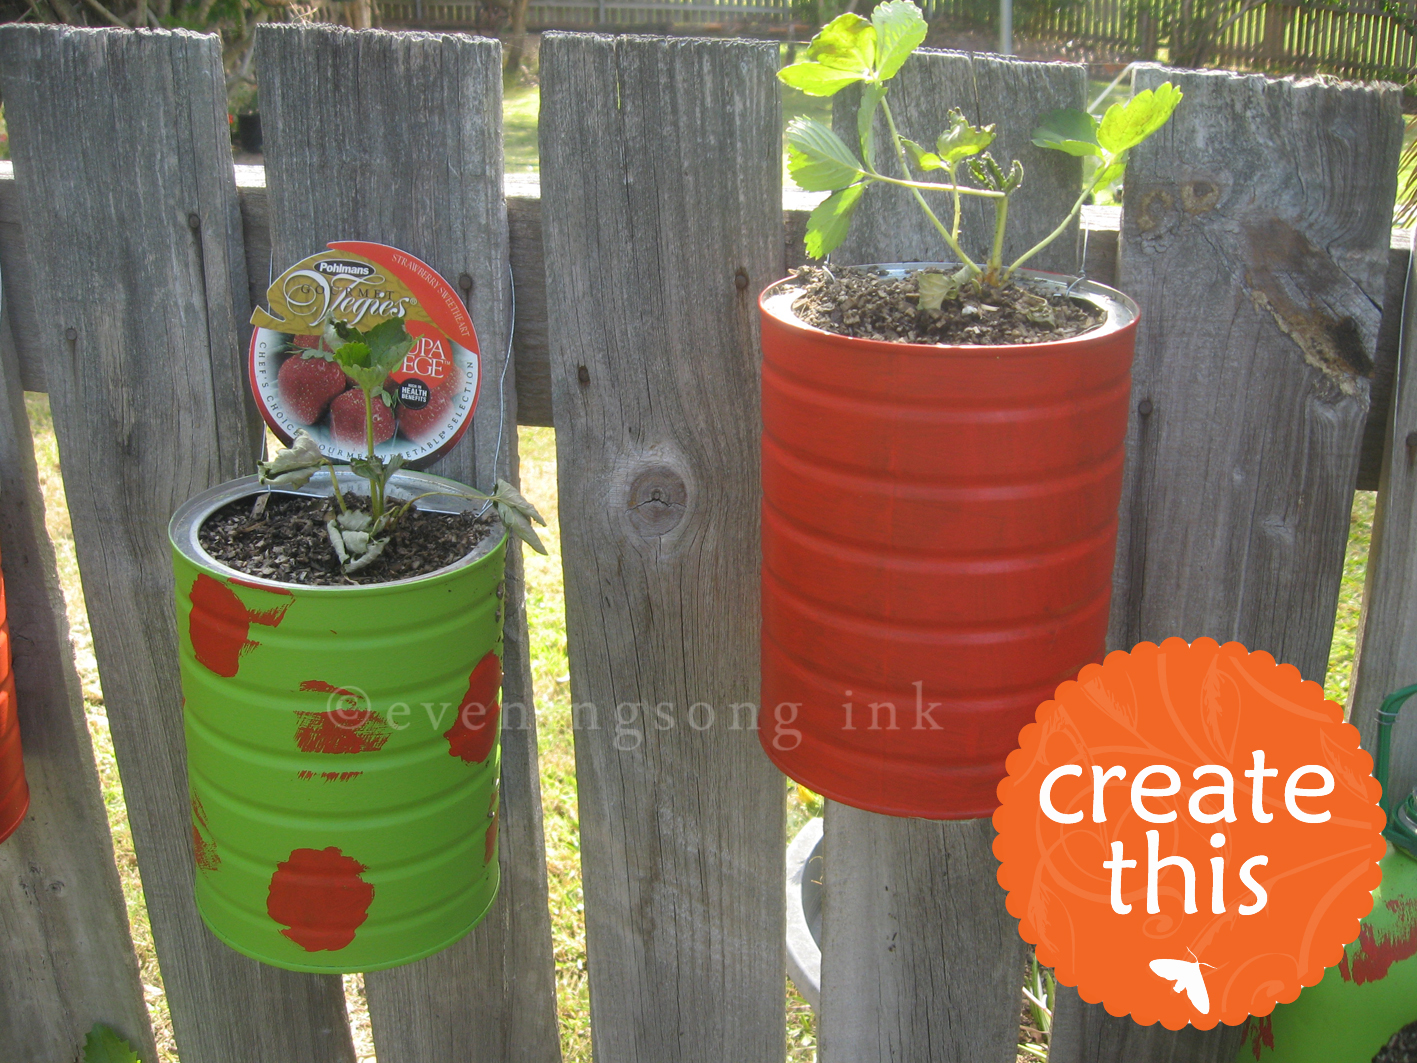 Eveningsong ink recycled plant pots the perfect gift or for Recycled flower pots